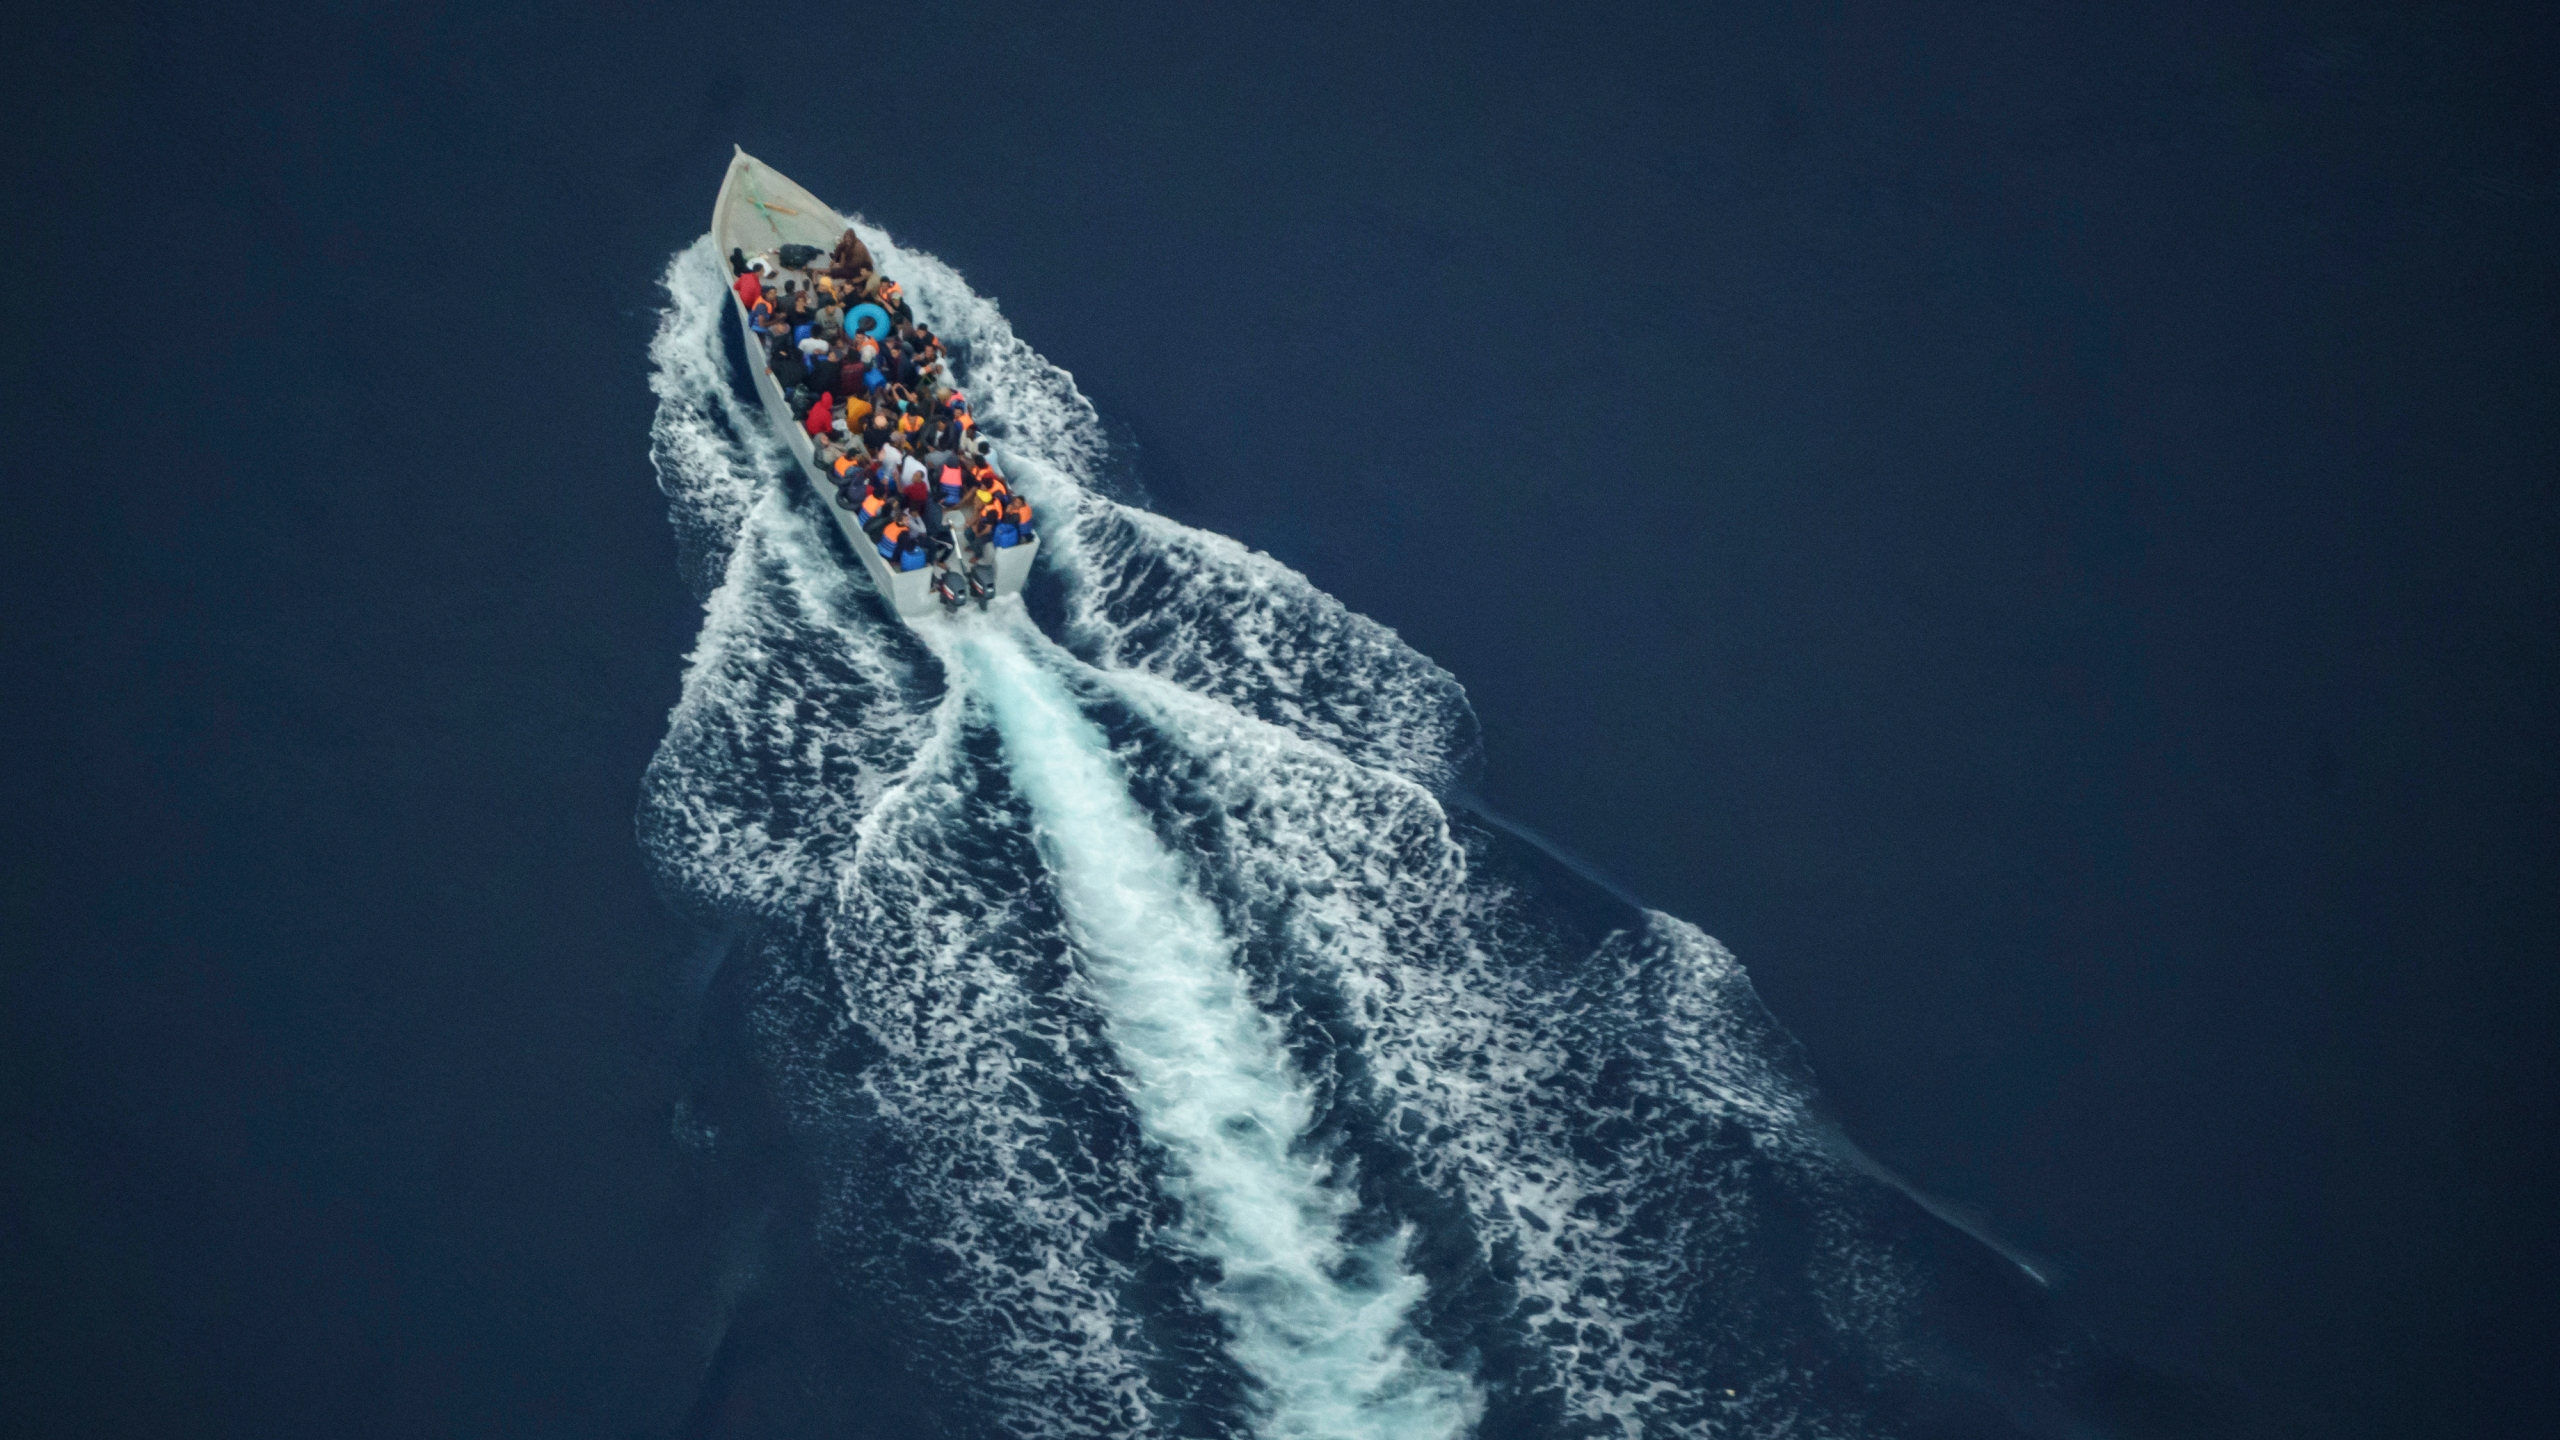 Migrants navigate on an overcrowded wooden boat in the Central Mediterranean Sea between North Africa and the Italian island of Lampedusa, Saturday, Oct. 2, 2021, as seen from aboard the humanitarian aircraft Seabird. At least 23,000 people have died or disappeared trying to reach Europe since 2014, according to the United Nations' migration agency. Despite the risks, many migrants say they'd rather die trying to reach Europe than be returned to Libya. (AP Photo/Renata Brito)